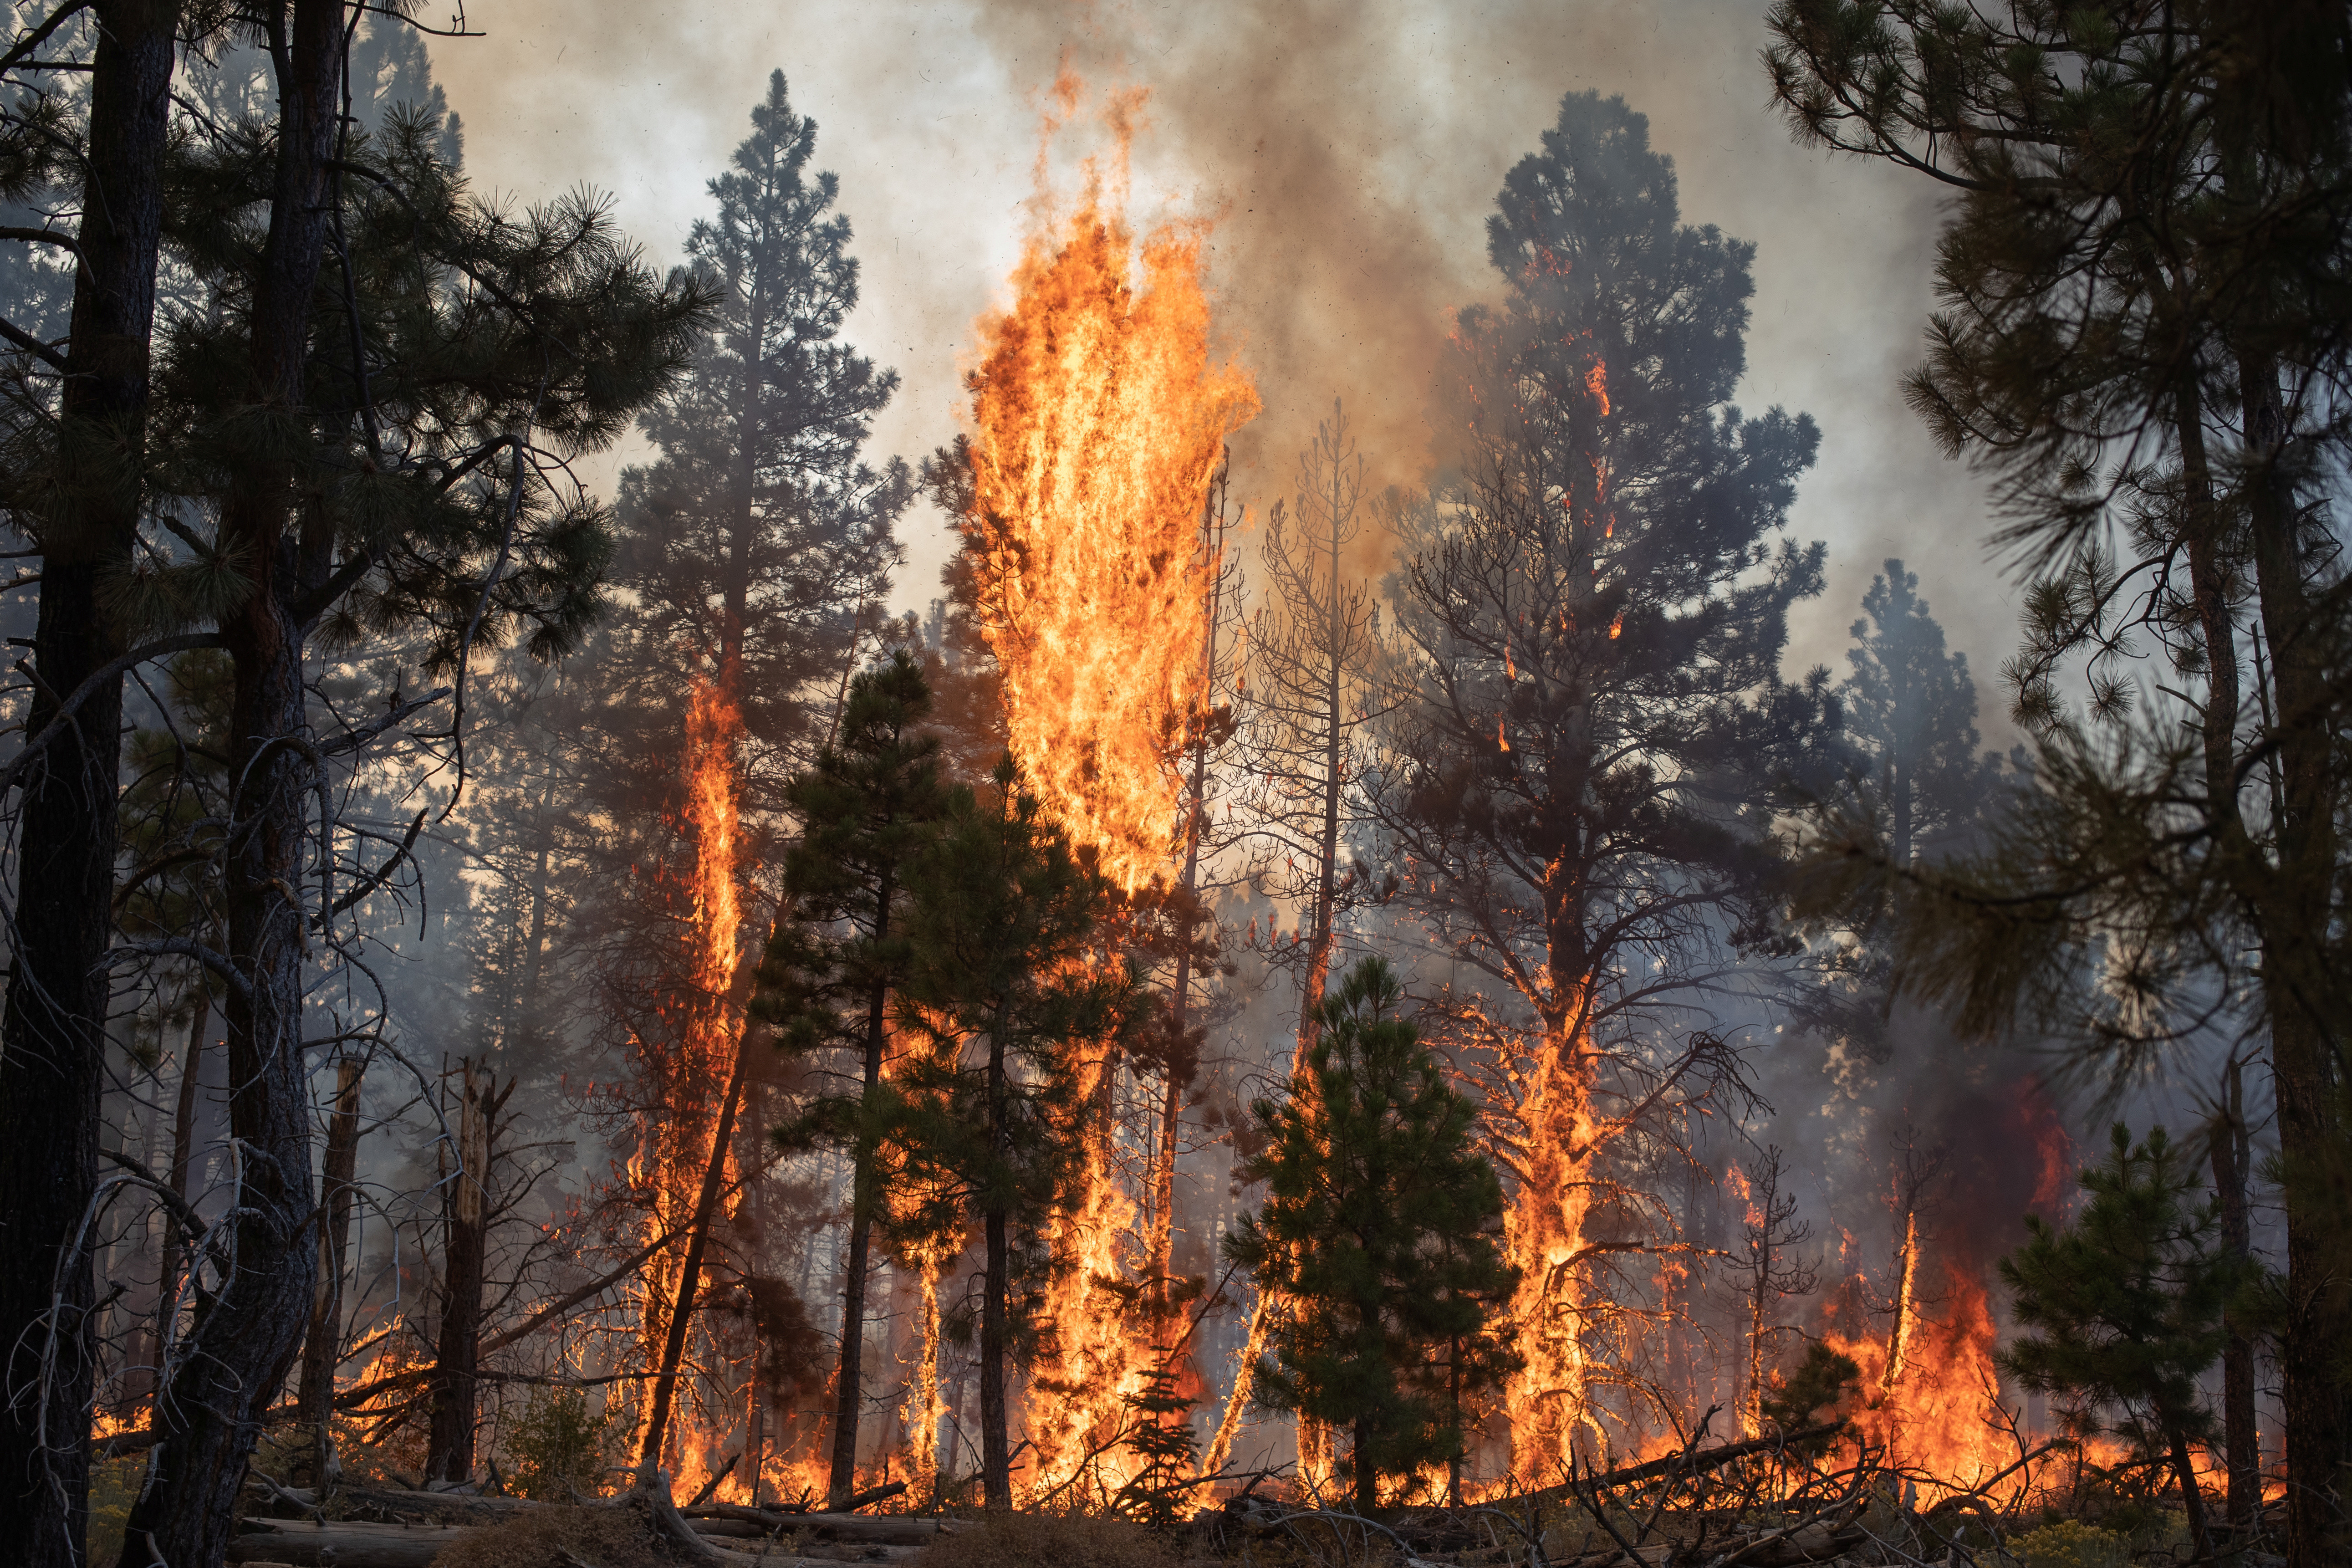 Trees are ablaze from the Brattain Fire in the Fremont National Forest near Paisley, Oregon, U.S., September 19, 2020. REUTERS/Adrees Latif - RC212J98TFVQ